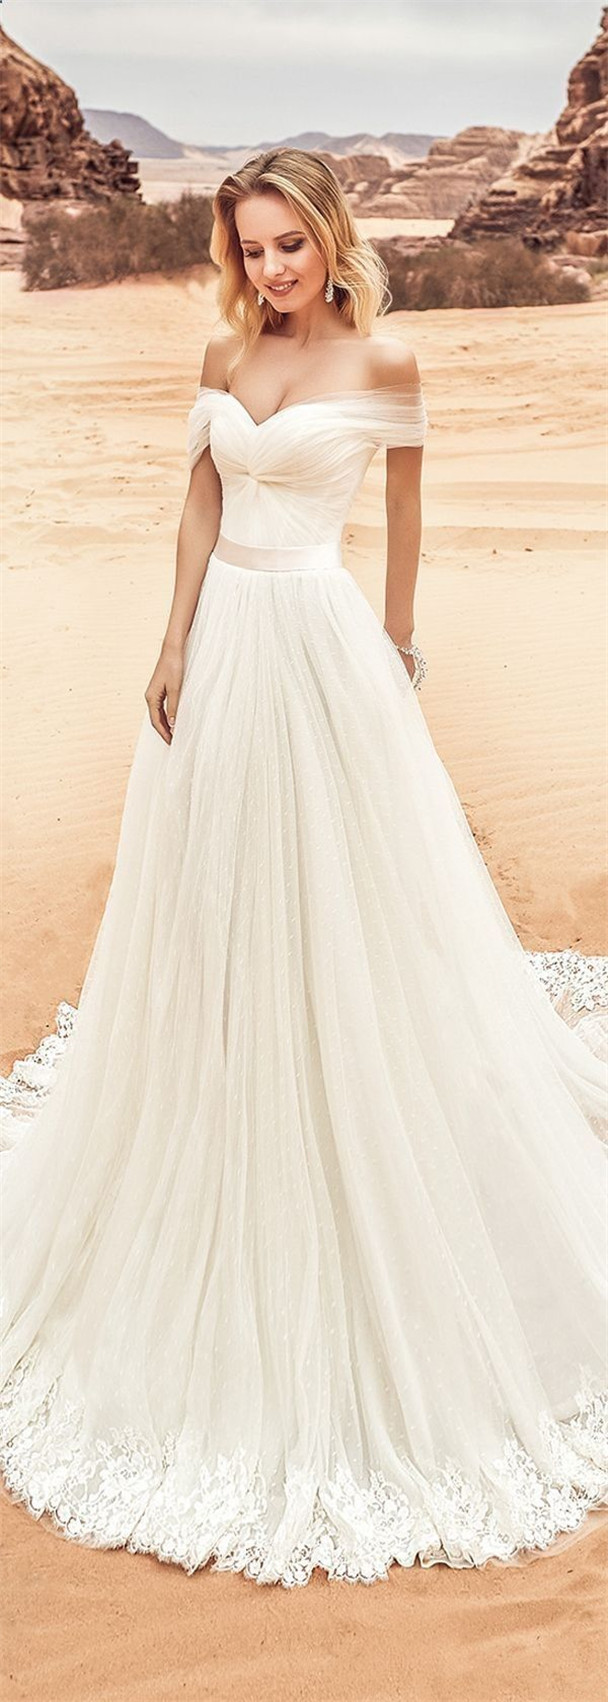 Off The Shoulder Wedding Dresses To Get Inspired